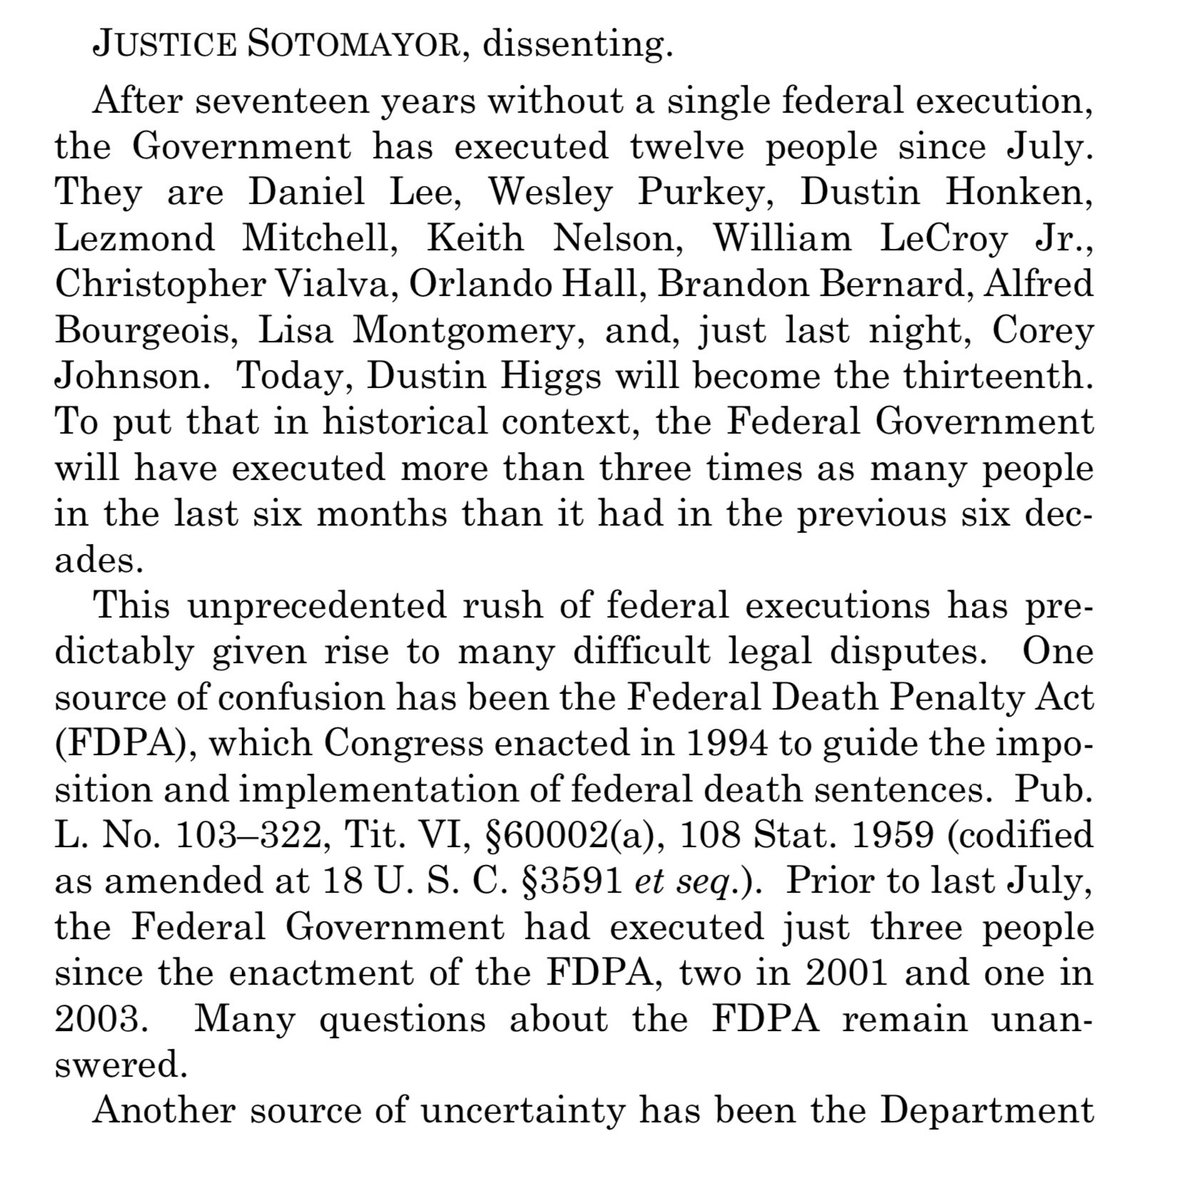 Supreme Court vacates the stay blocking Dustin Higgs's execution by a 6–3 vote, with Breyer and Sotomayor both writing dissents. Sotomayor starts by naming every victim of the Trump administration's killing spree.